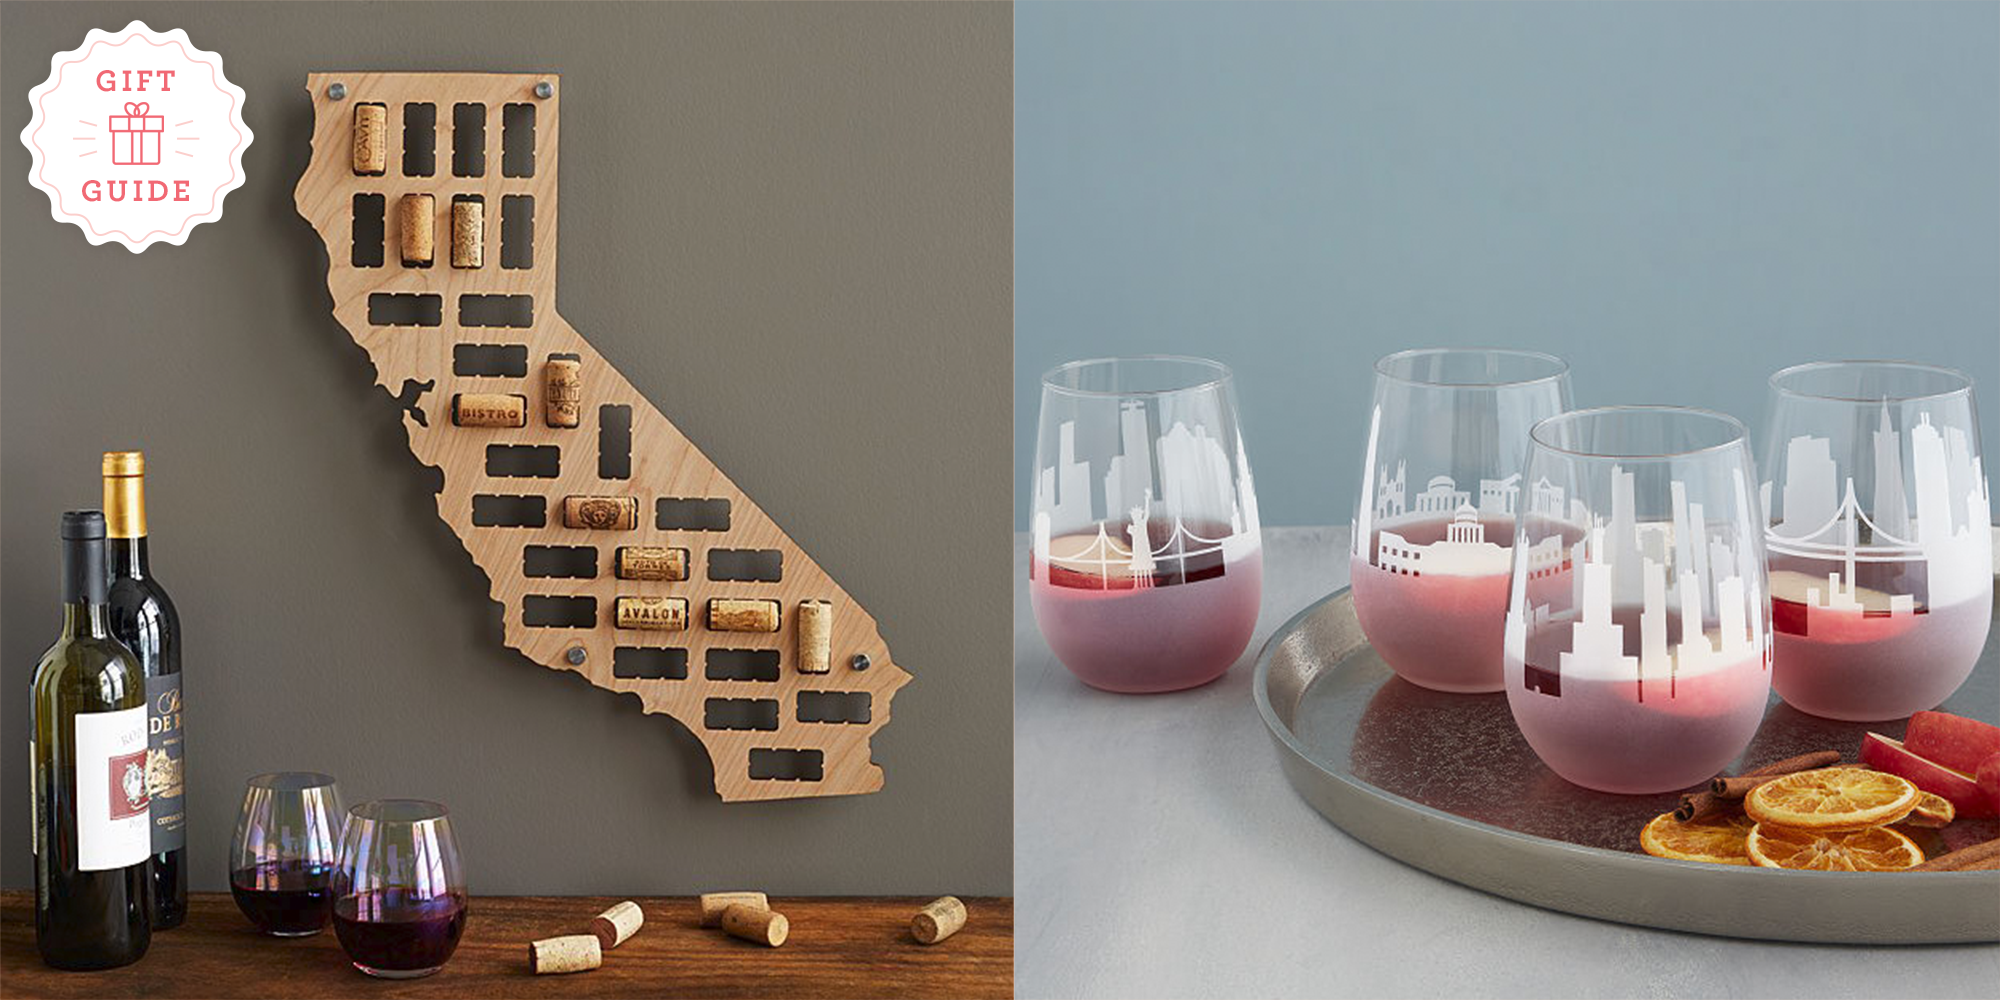 41 Funny Wine Lover Gifts - Great Gift